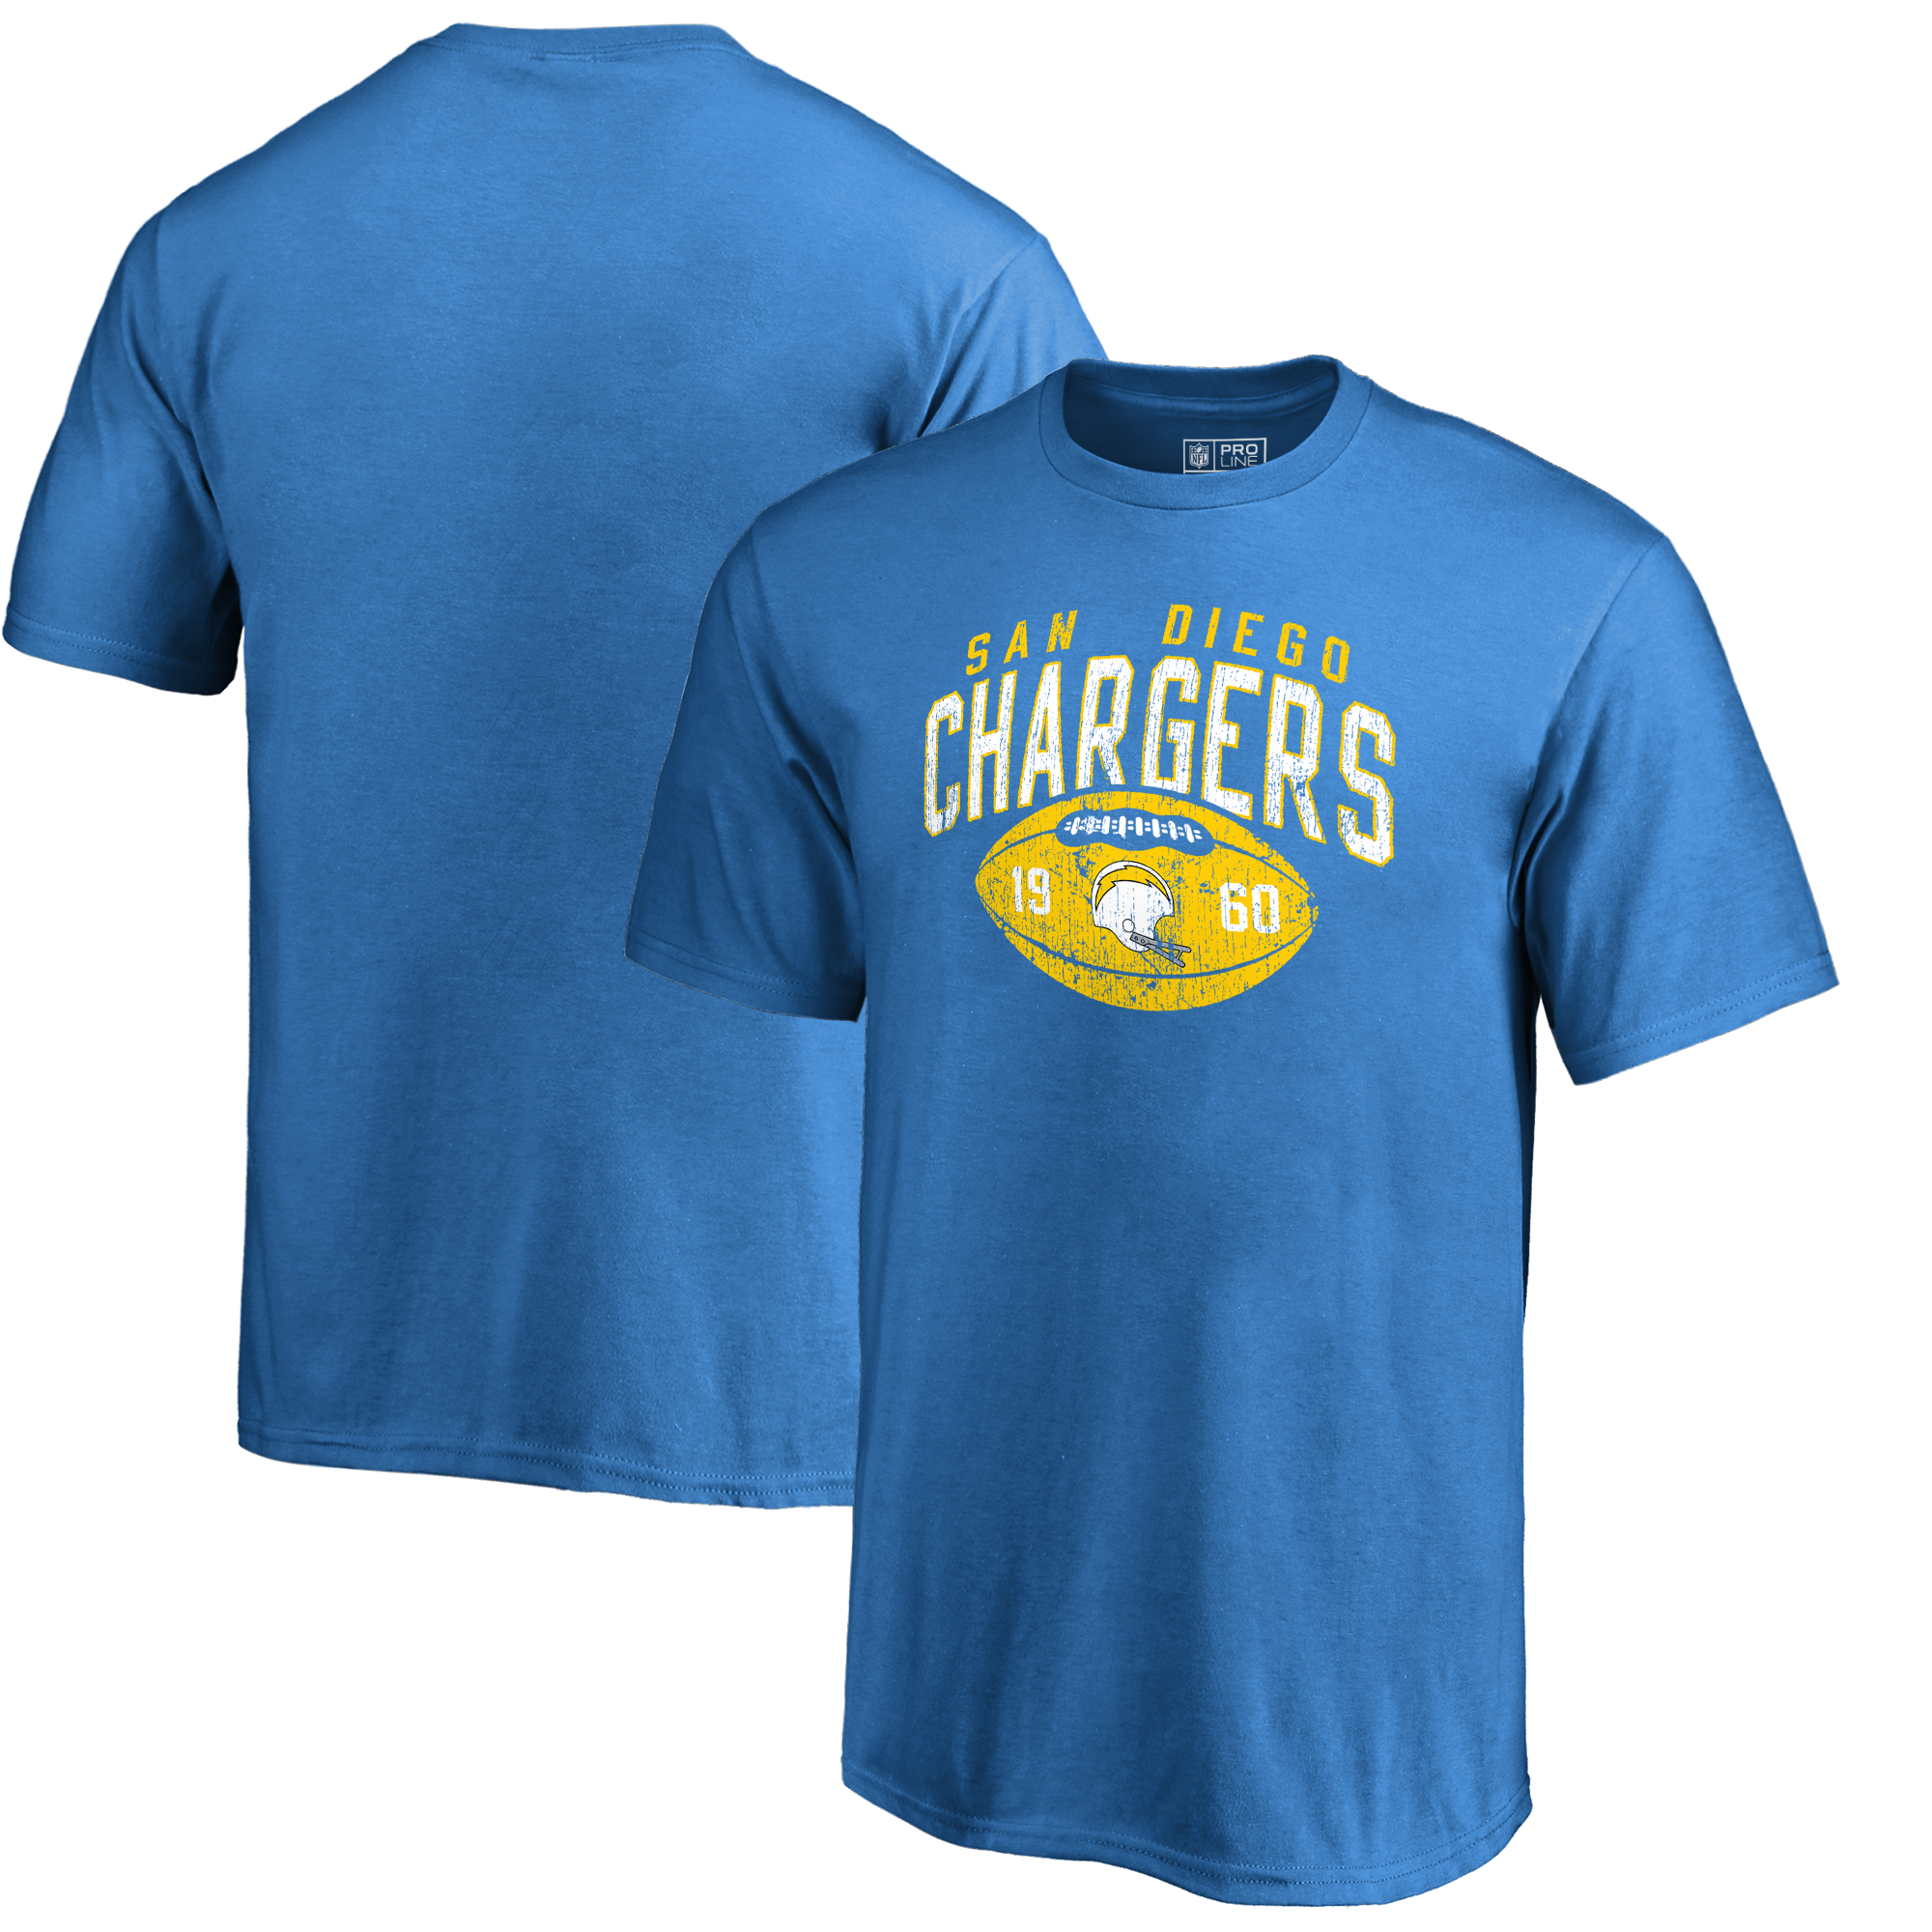 Los Angeles Chargers NFL Pro Line by Fanatics Branded Youth Throwback Collection Coin Toss T-Shirt - Blue